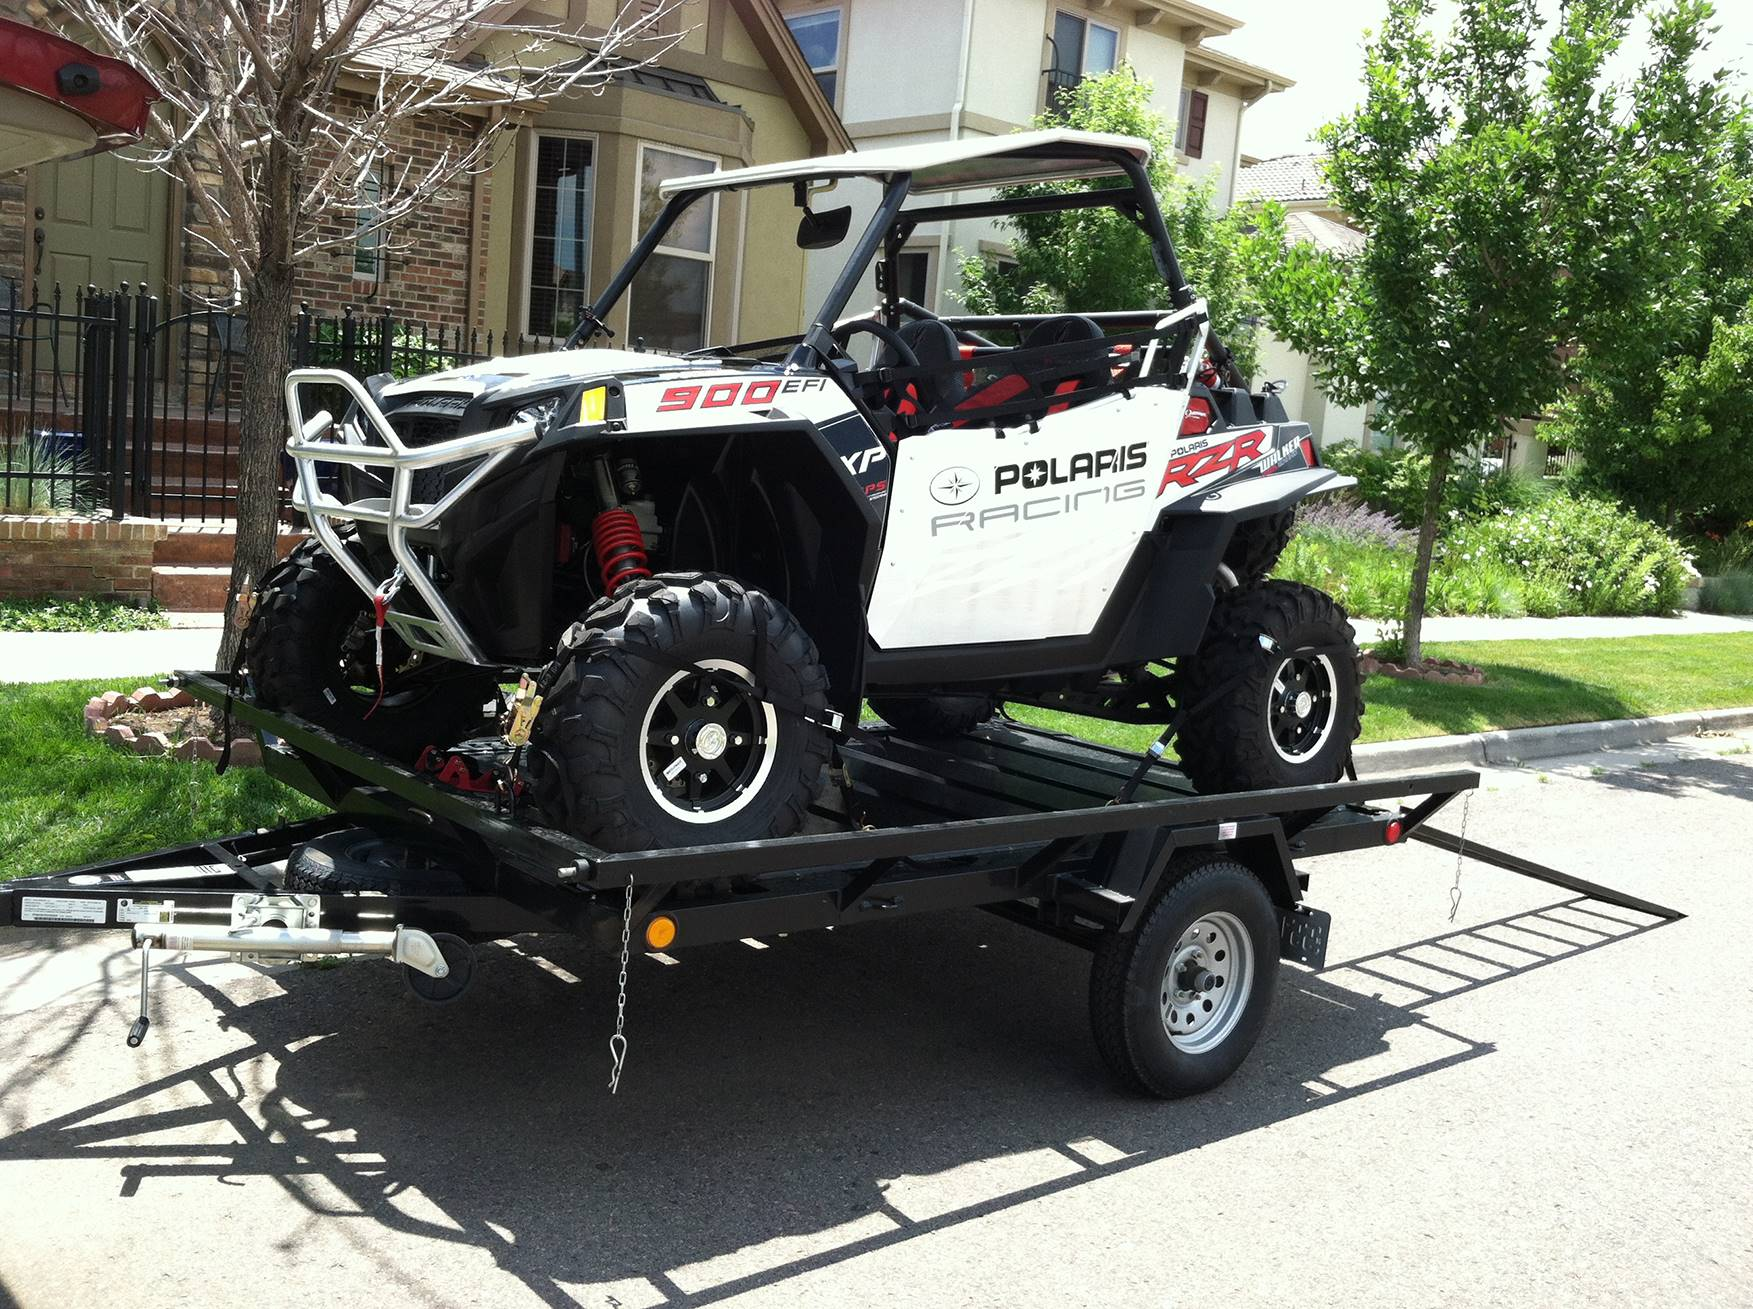 2021 Echo Trailers 2-Place Extra-Width ATV/ 1 Place UTV Trailer in Spearfish, South Dakota - Photo 1